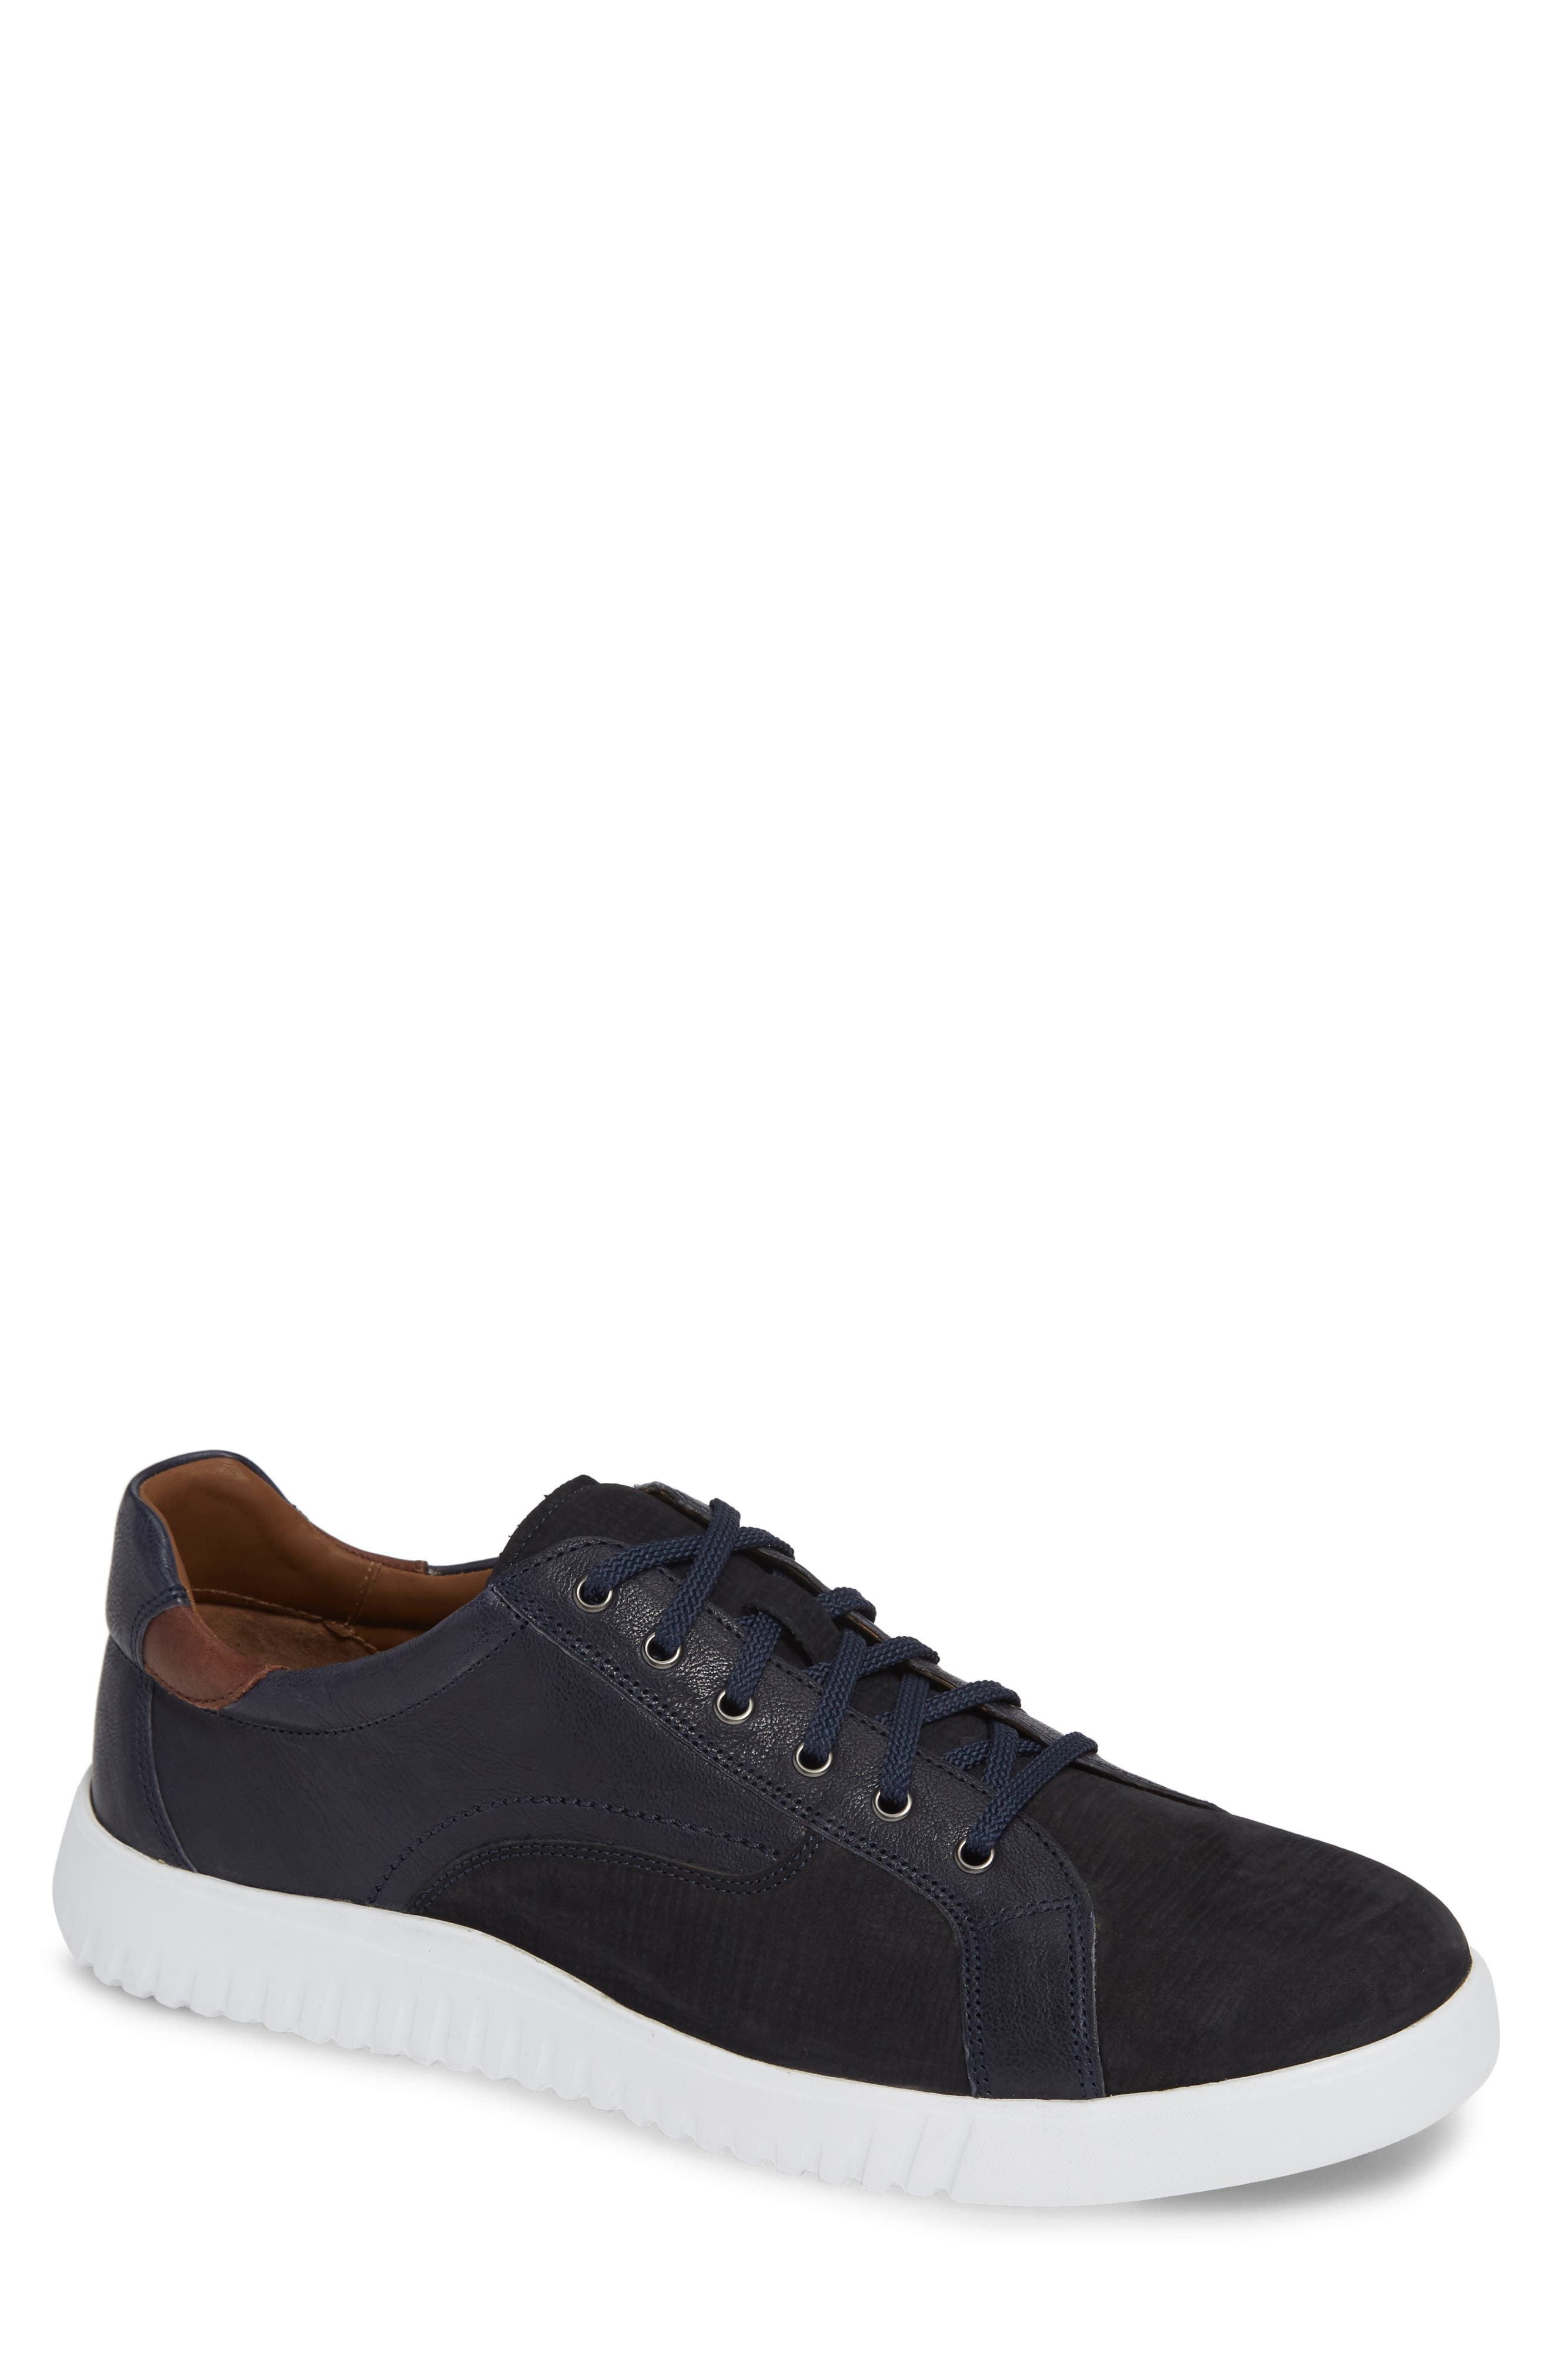 McFarland Sneaker,                         Main,                         color, NAVY NUBUCK